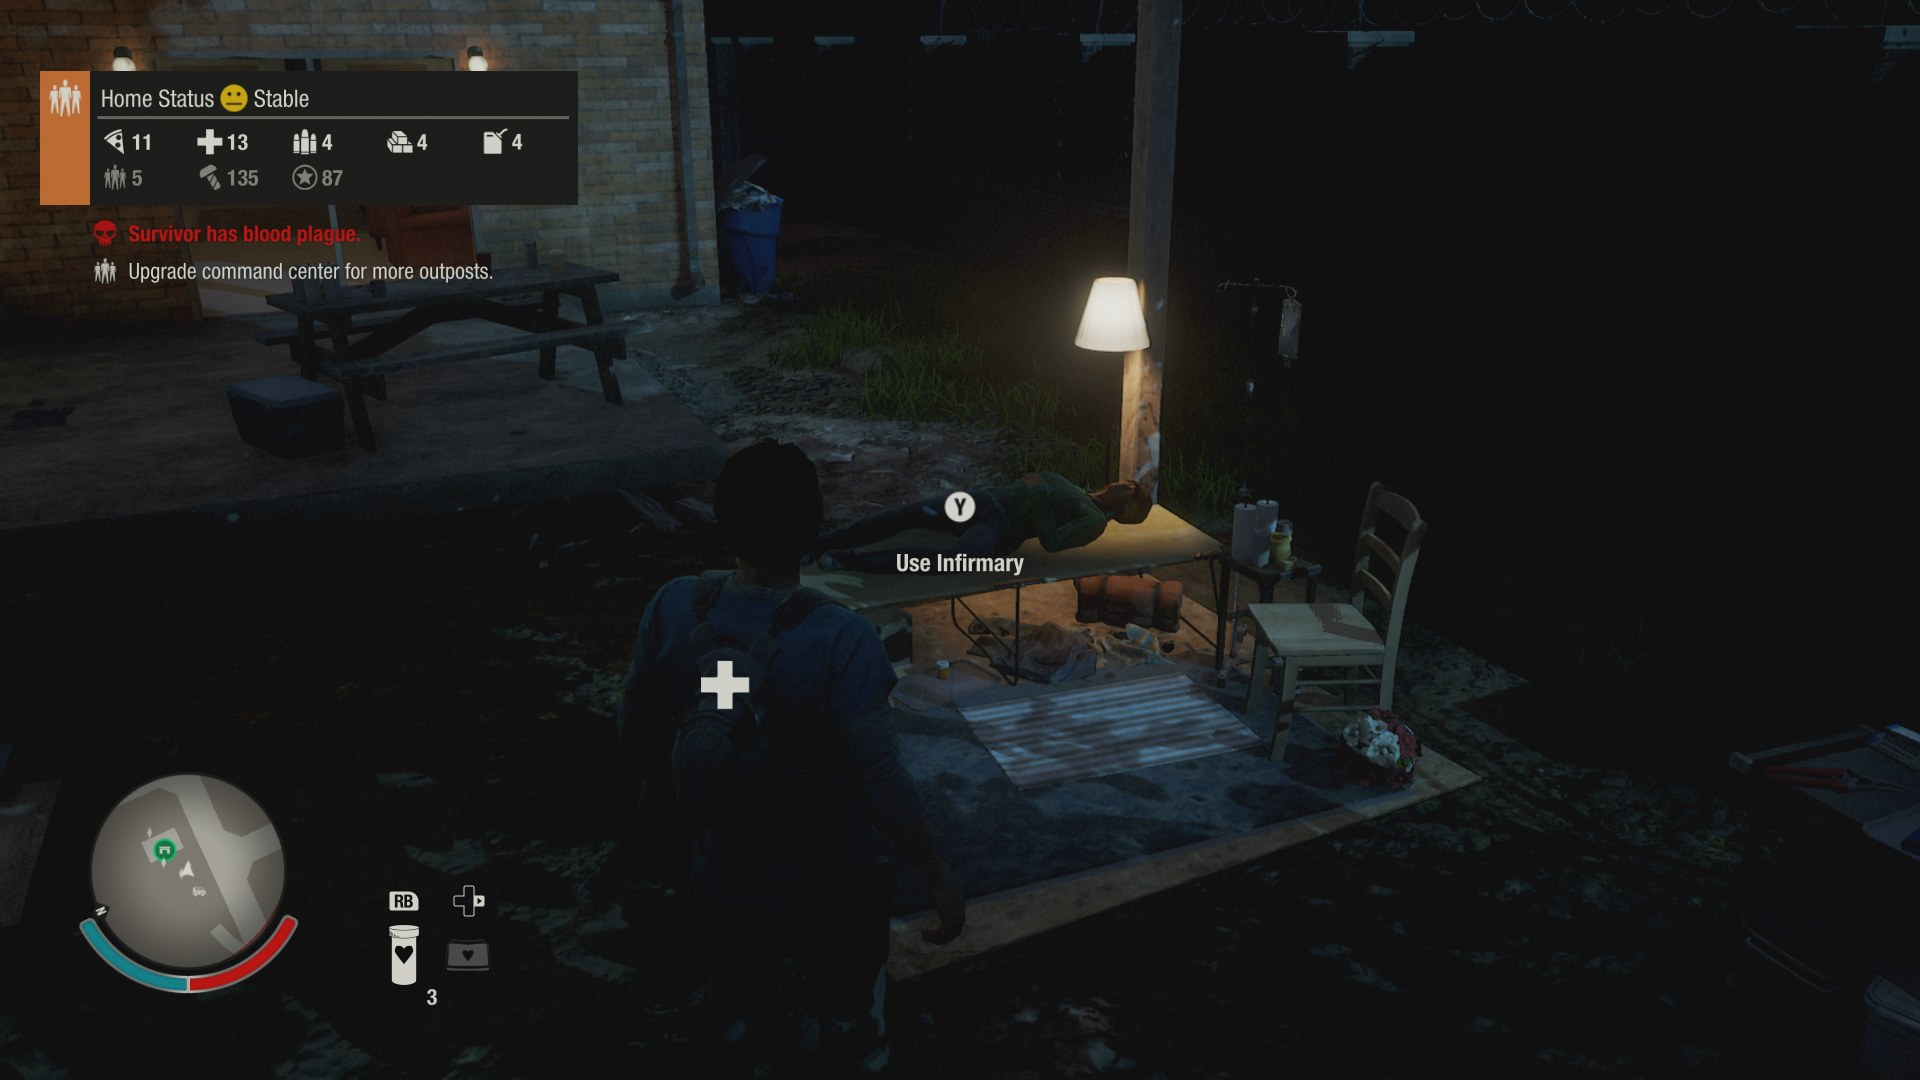 State of Decay 2 Blood Plague Guide - How to Cure the Sick